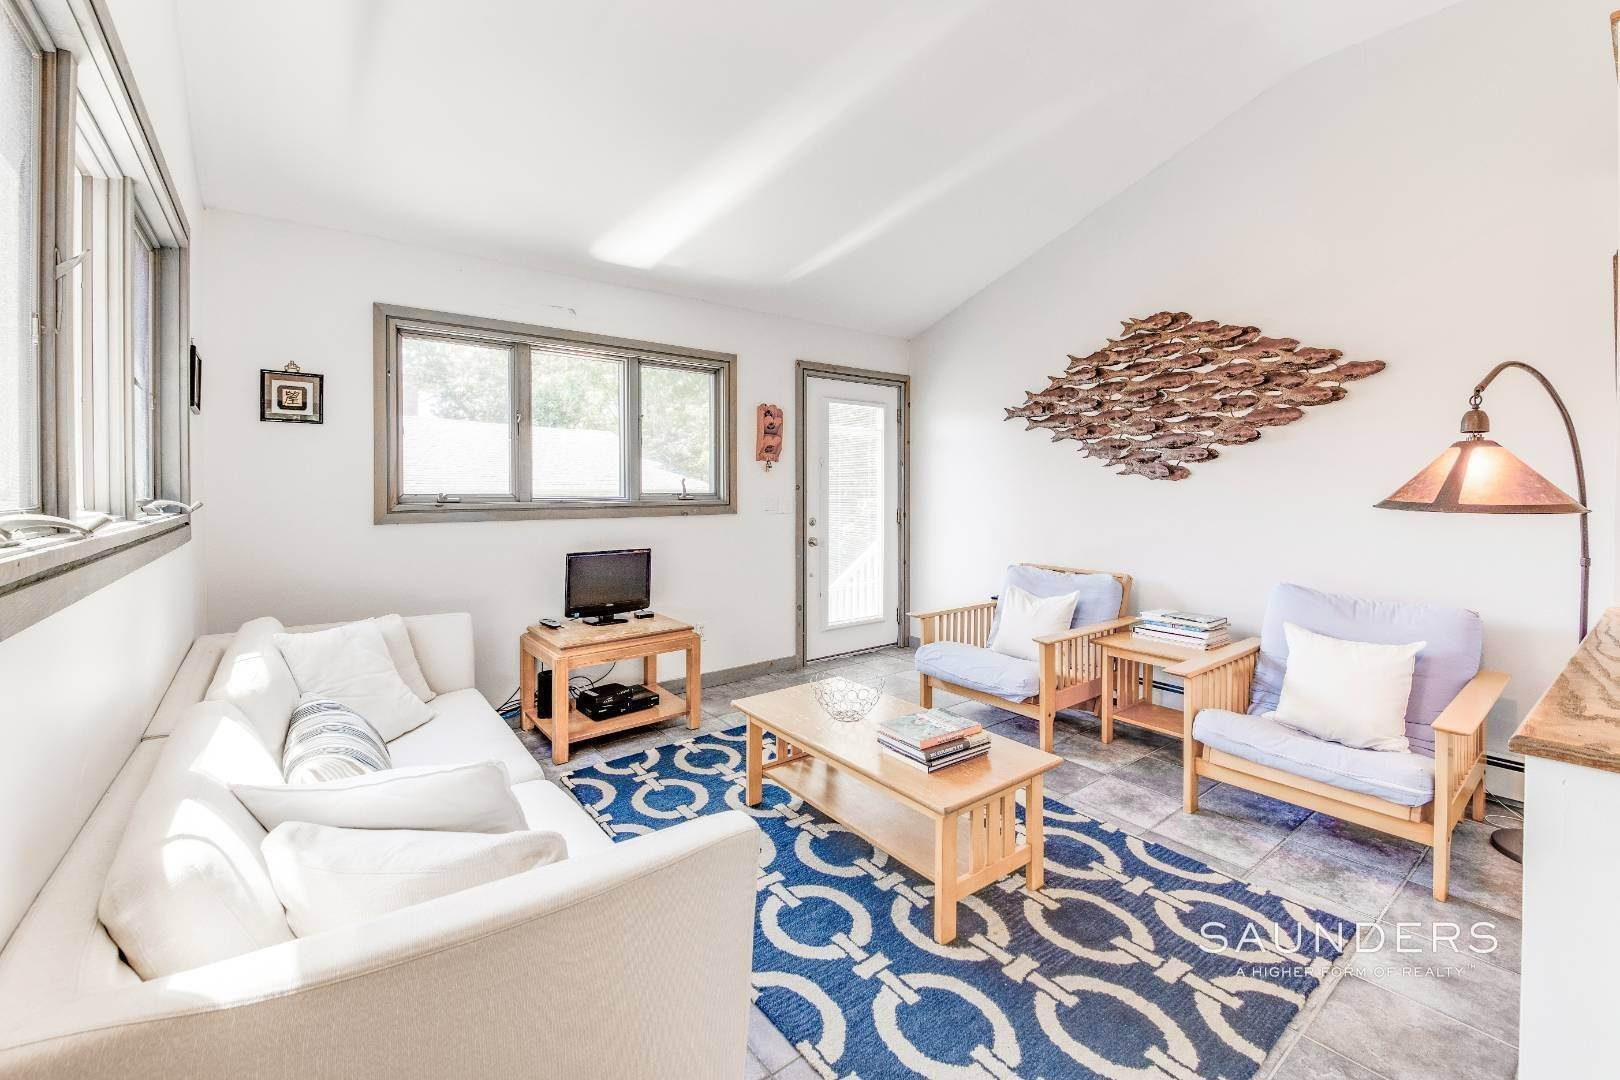 5. Single Family Homes for Sale at Montauk Beach House Heaven 133 Grant Drive, Montauk, East Hampton Town, NY 11954